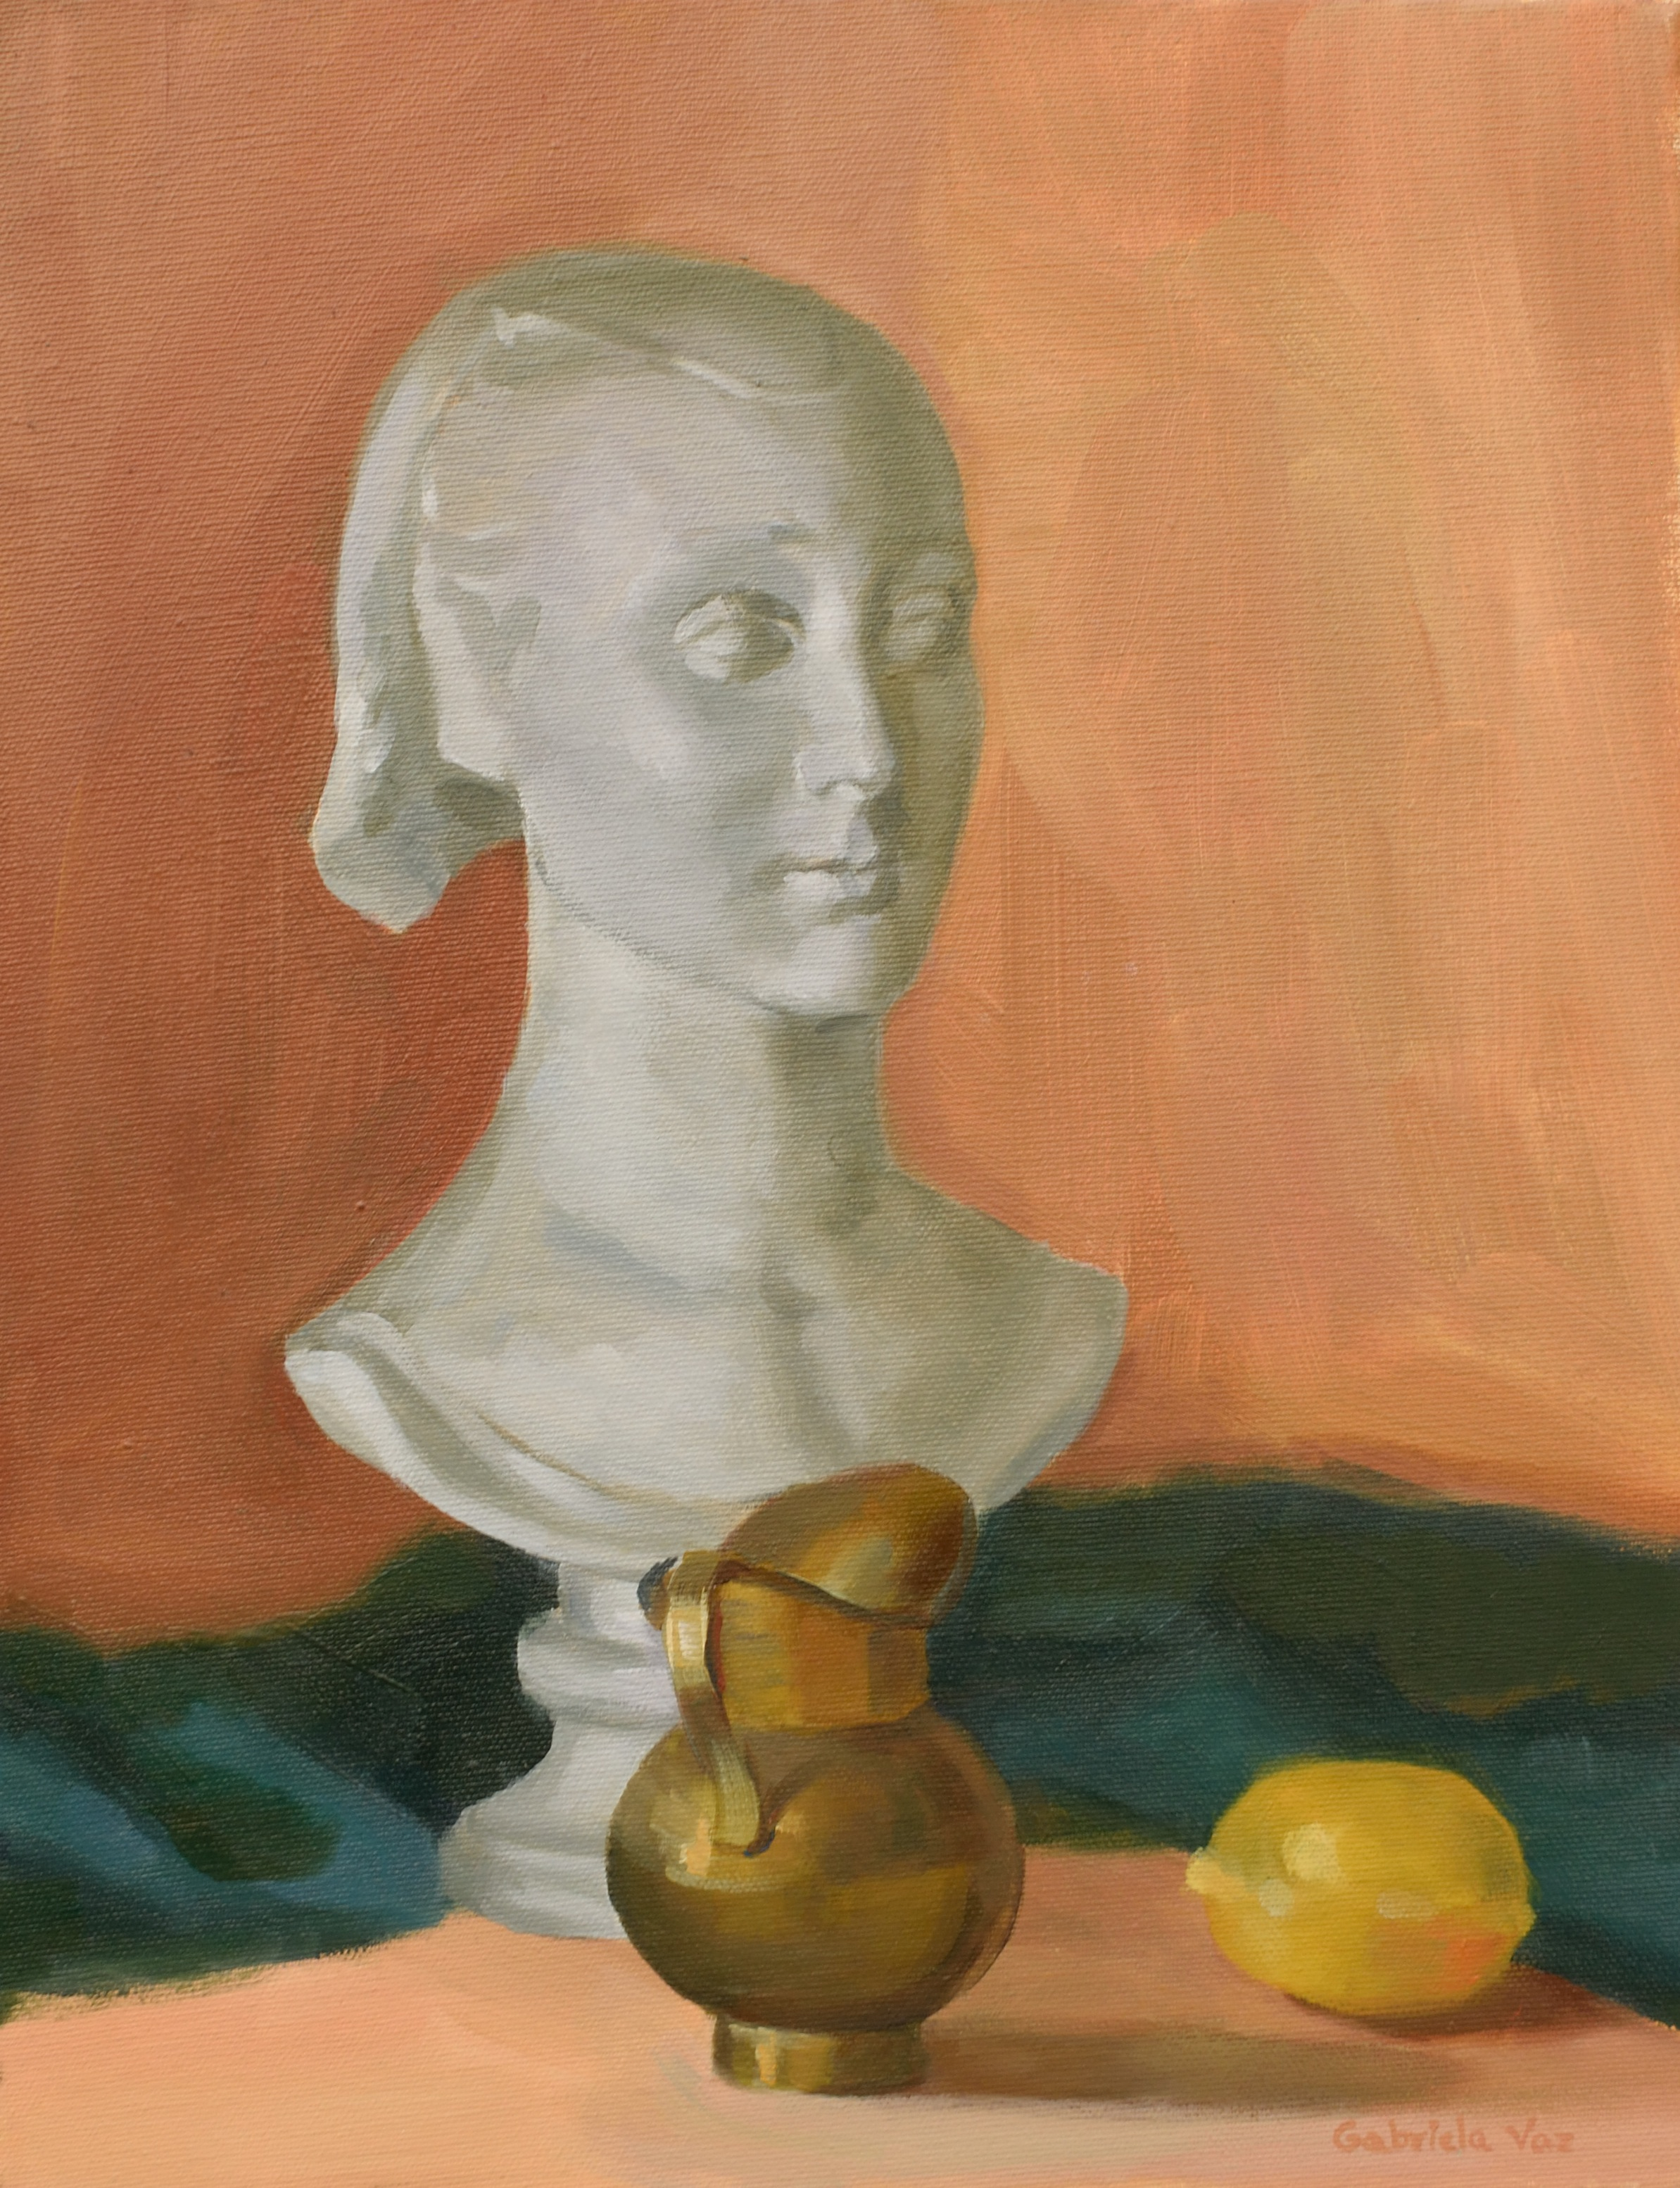 Cast, jug and lemon, oil on canvas, 40 x 30 cm, 2017